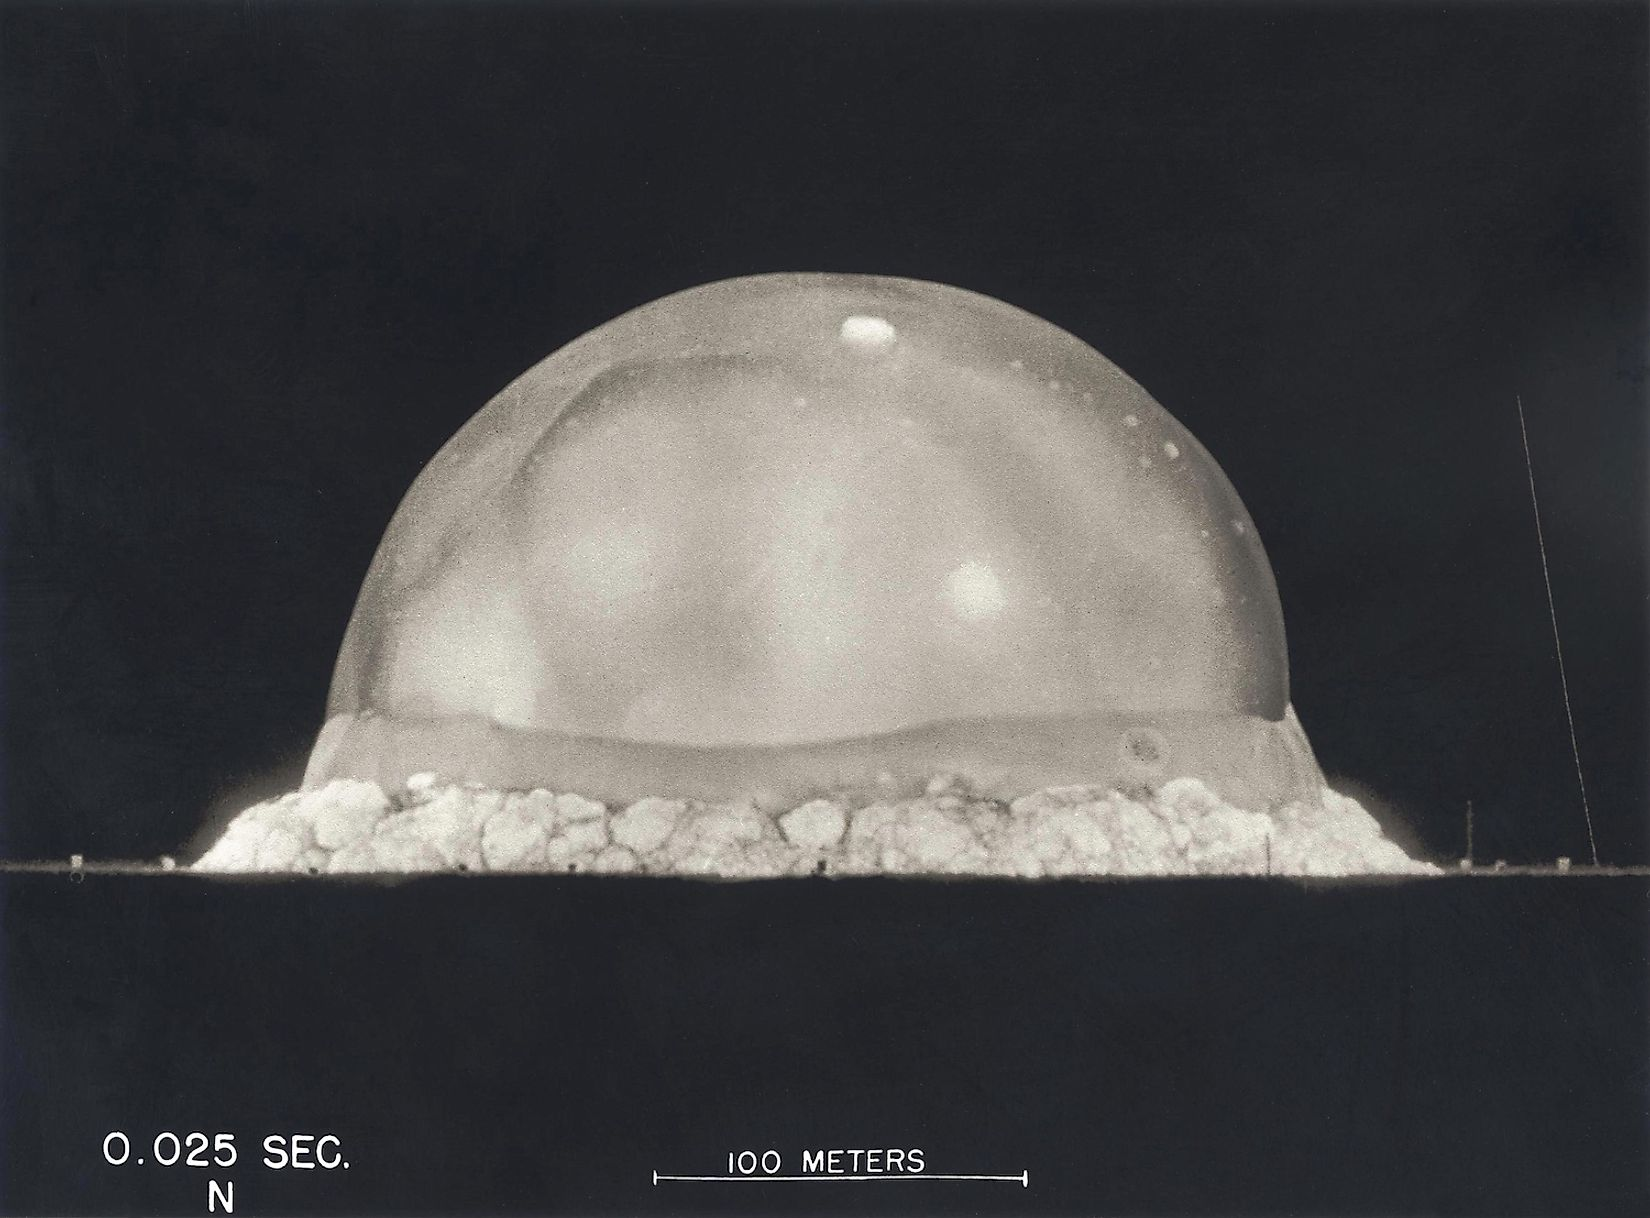 Photograph taken at .025 seconds after the Trinity initial detonation shows a plasma dome. Manhattan Project, World War 2. Alamogordo, New Mexico. Image credit: Everett Historical/Shutterstock.com